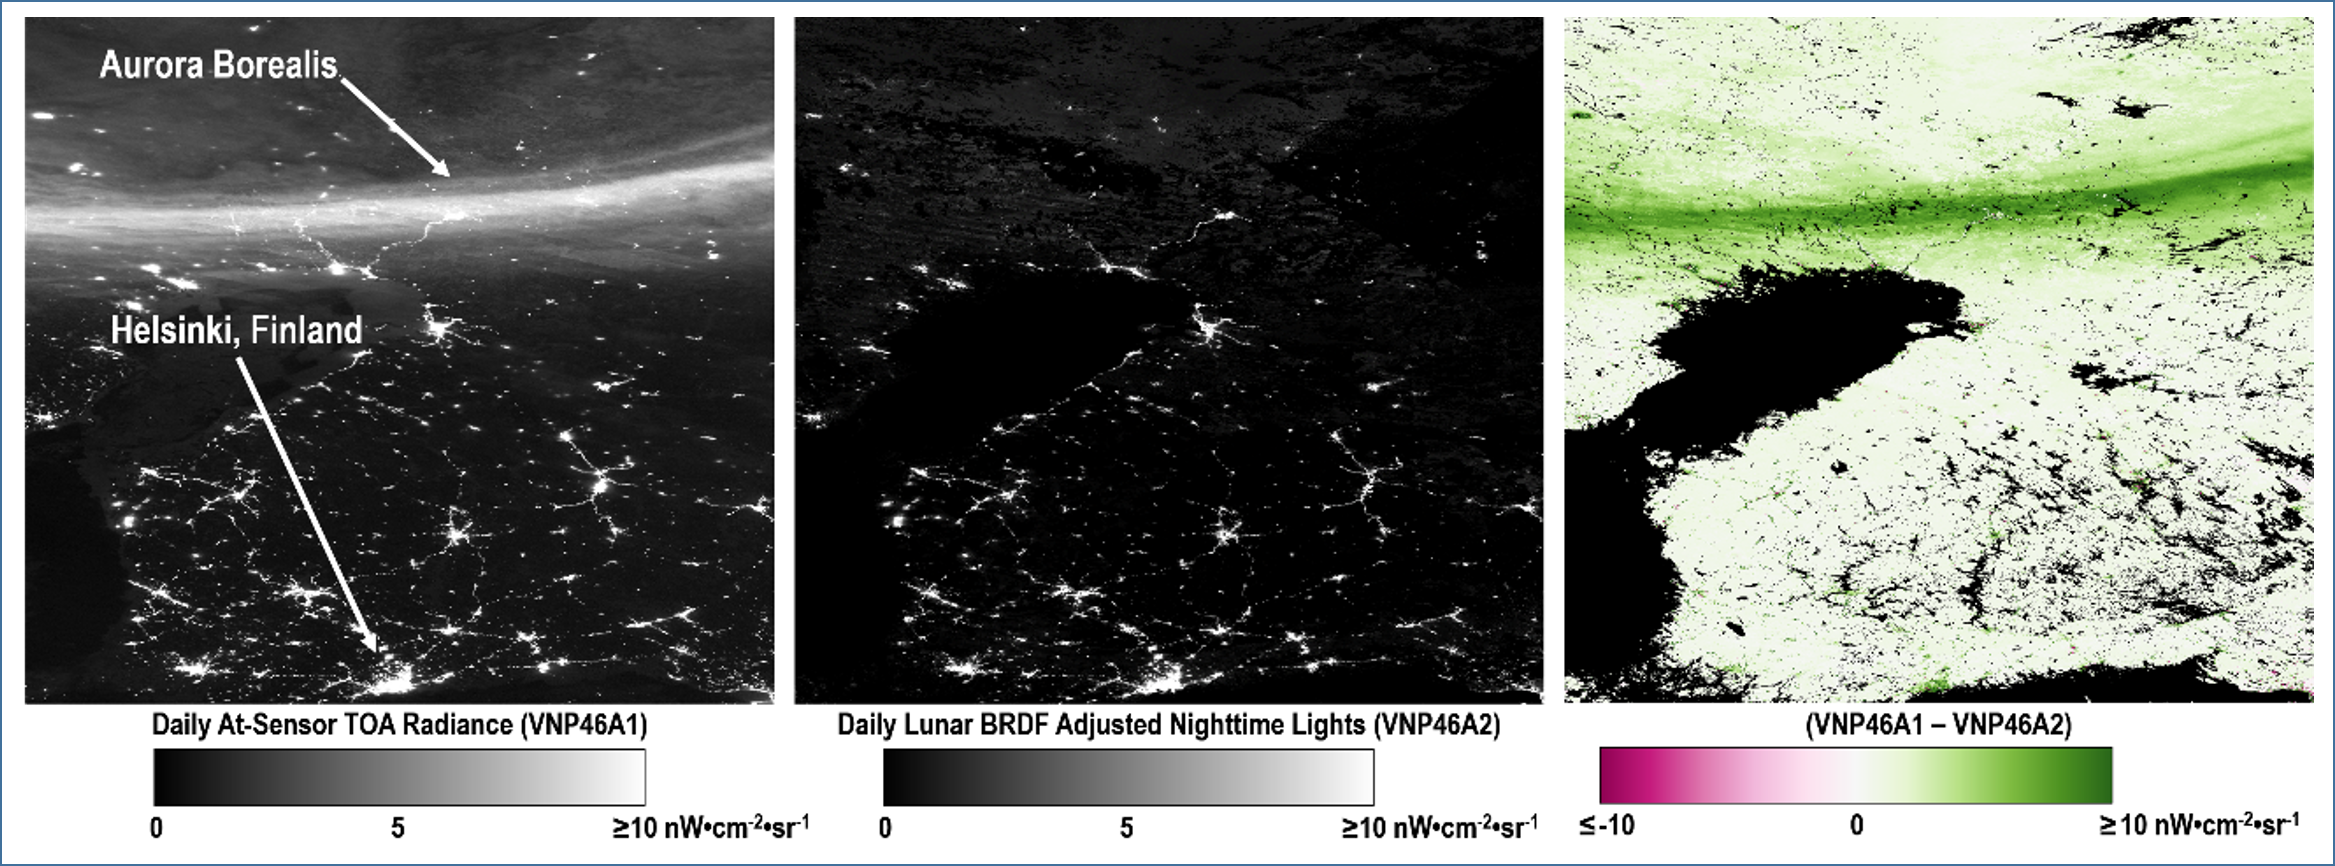 VNP46 product suite components for a 10° x 10° Level 3 tile over Sweden and Finland (h20v02; DOY 2013-080). The half-moon-illuminated and 30% cloud-contaminated scene is shown to capture extraneous light emissions north of the Gulf of Bothnia caused by the Aurora Borealis.